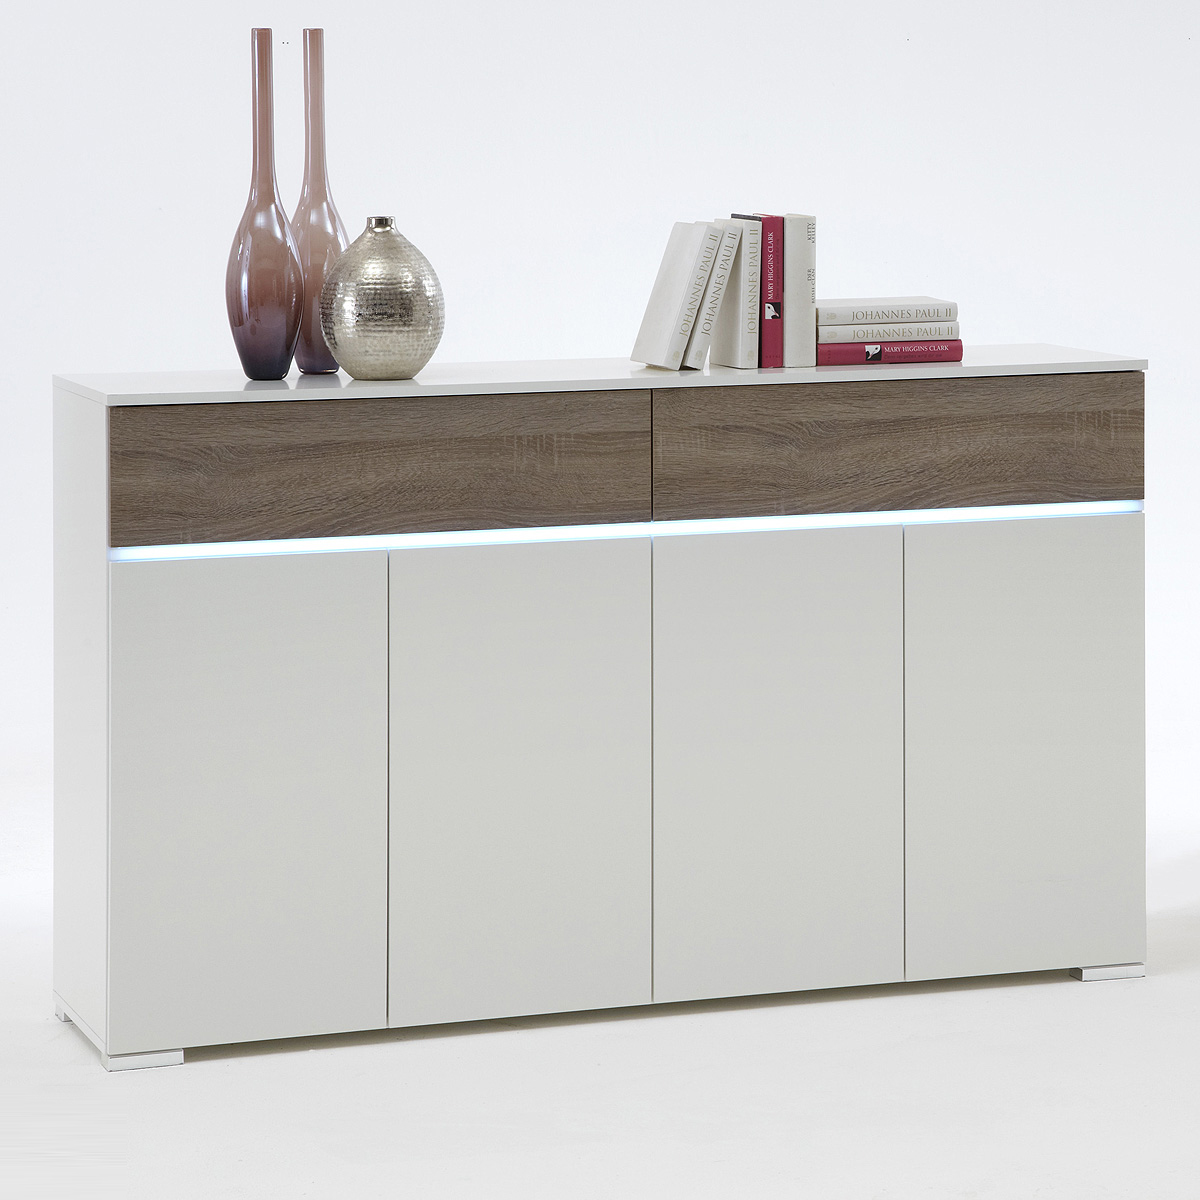 sideboard light kommode wei und sonoma eiche s gerau dunkel und led ebay. Black Bedroom Furniture Sets. Home Design Ideas